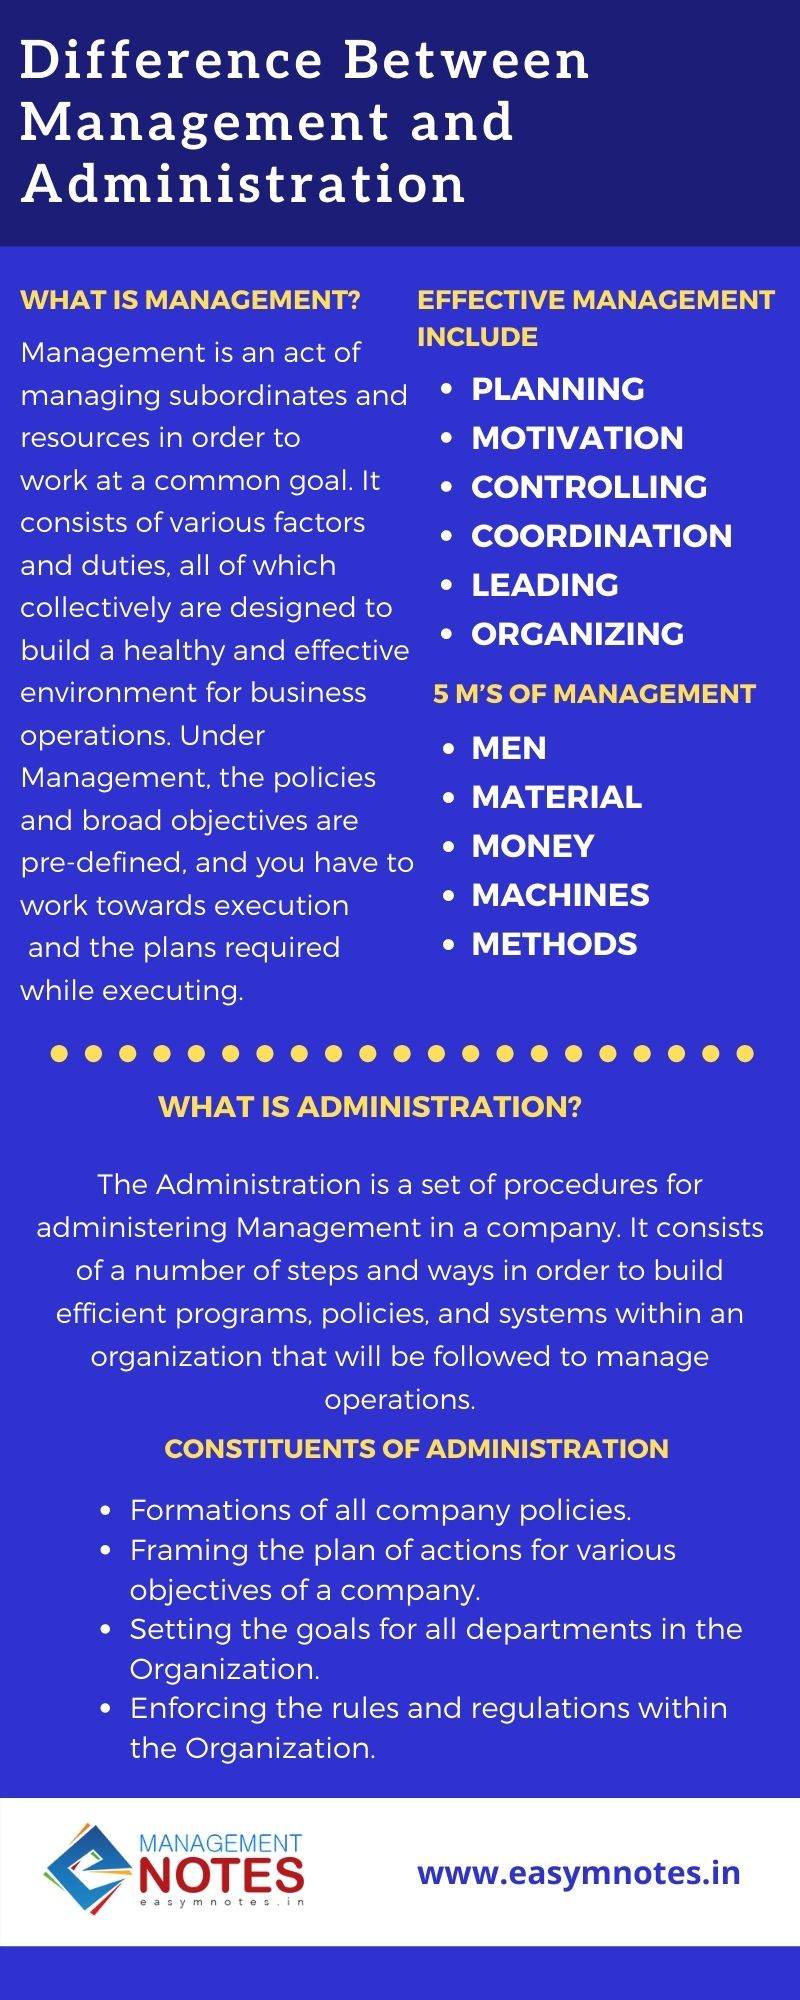 Difference Between Management and Administration